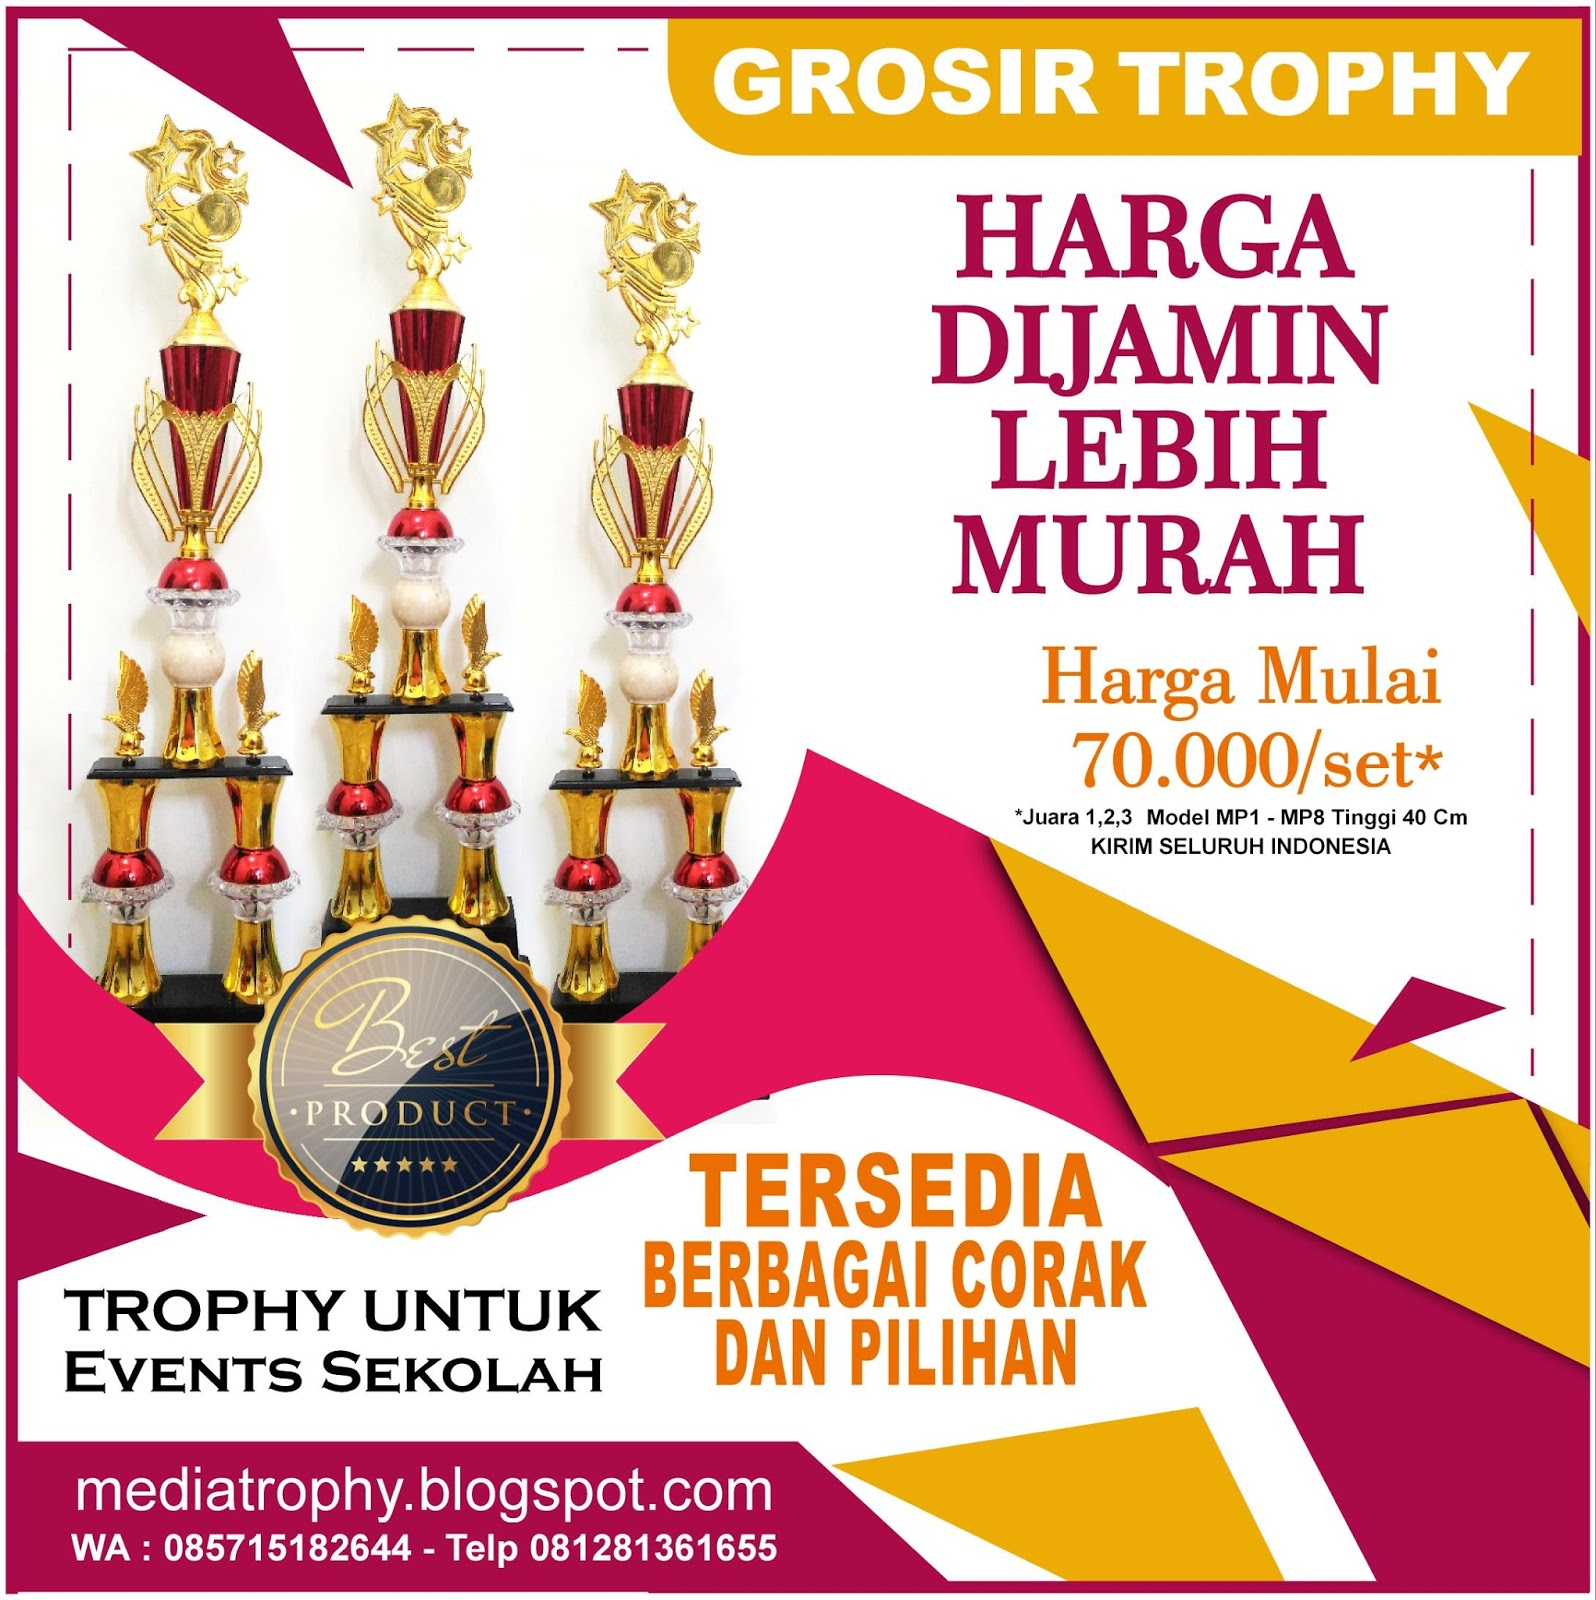 Grosir Trophy